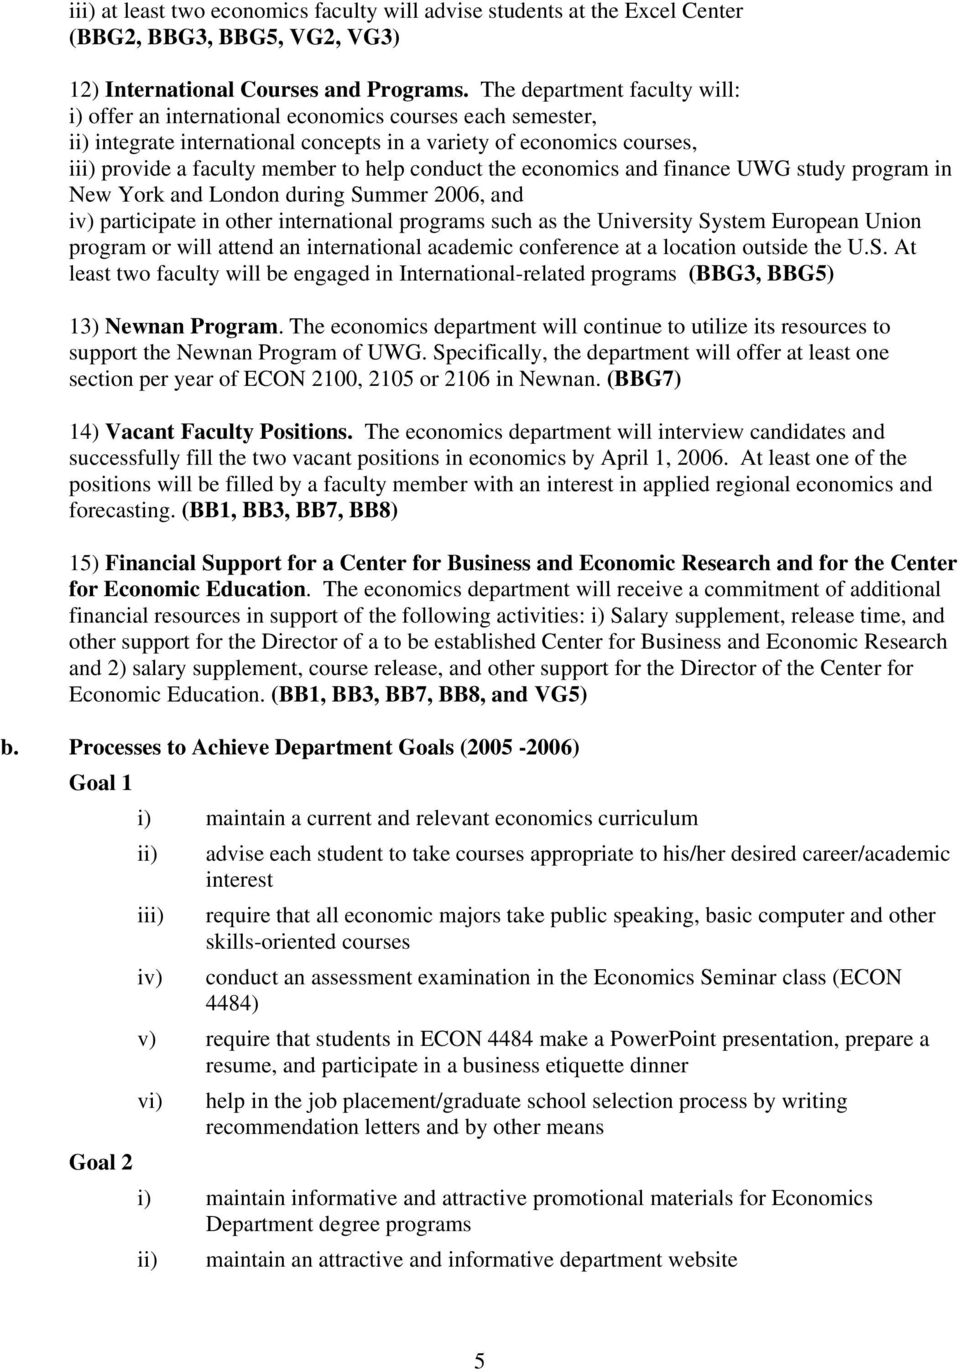 the richards college of business university of west georgia essay The university of west georgia is a comprehensive doctoral-granting university  located in carrollton, georgia, approximately 45 miles (80 km) west of atlanta,  georgia the university's main campus occupies 645 acres (2 km²) including the   the college of science and mathematics, the richards college of business,  the.